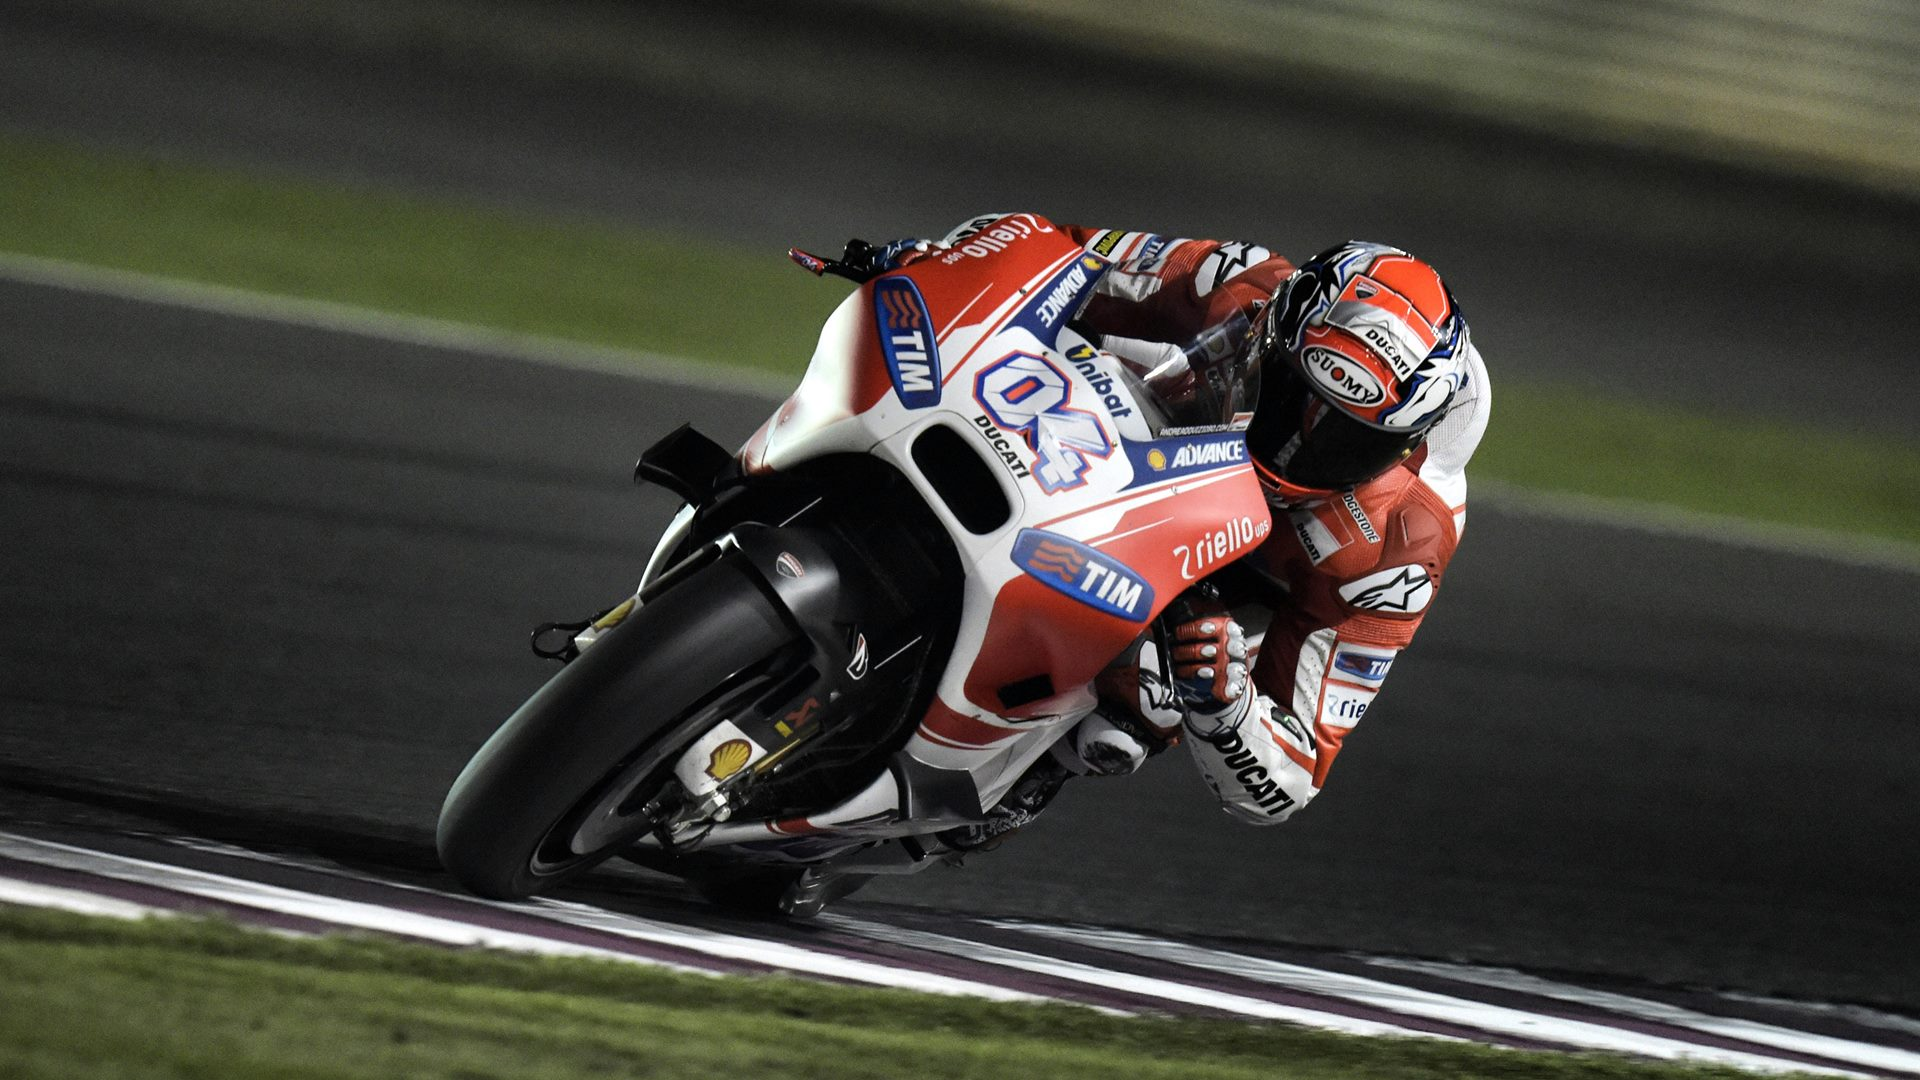 andrea dovizioso ducati with winglets hd wallpaper